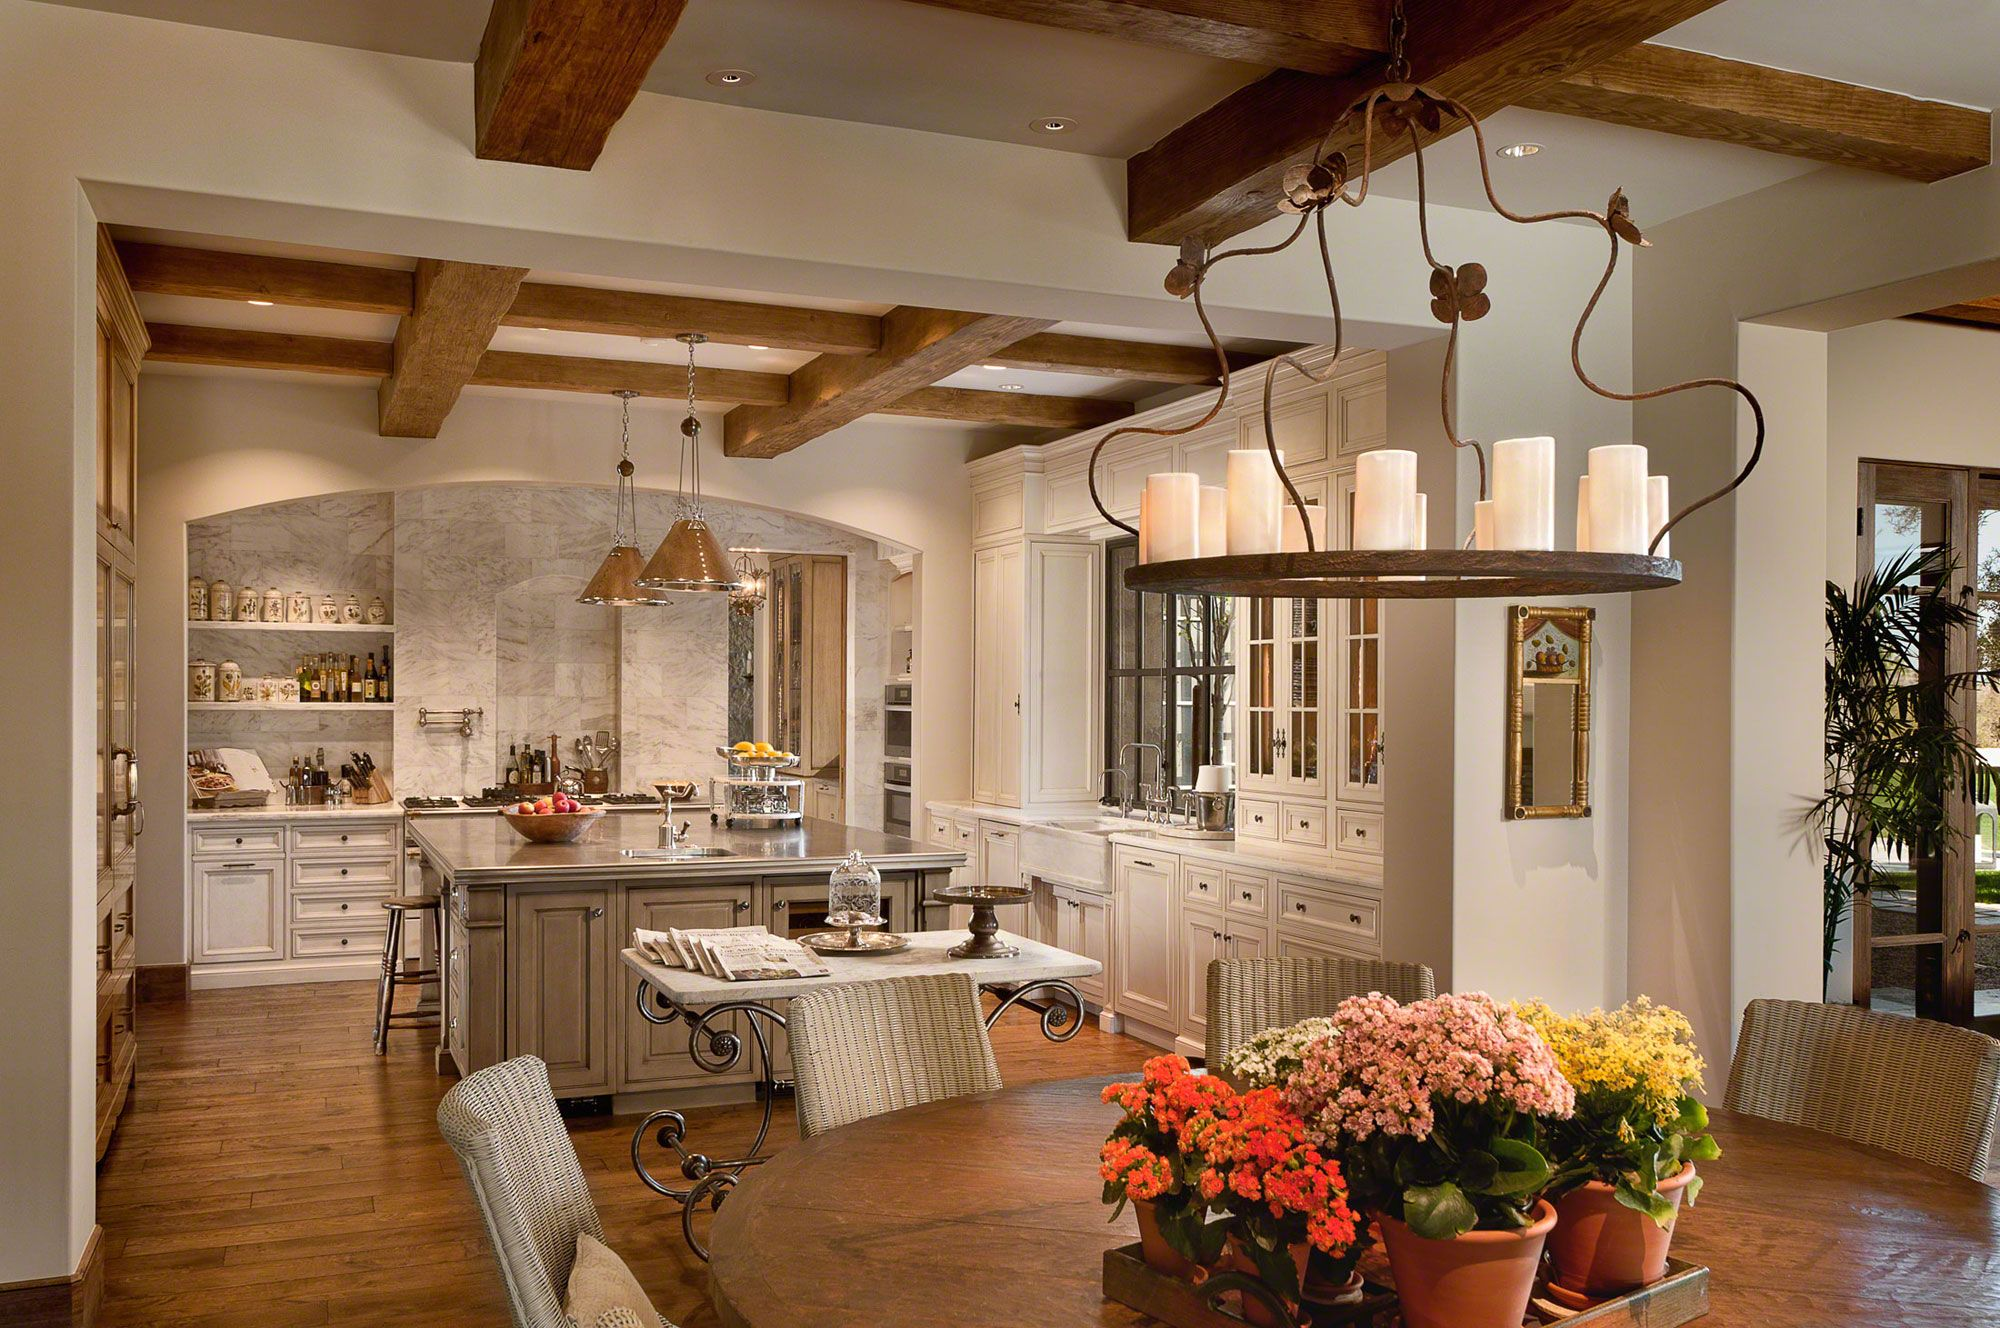 Best Kitchen Gallery: The Beams In This Beautiful Kitchen Bring A Great Dynamic To The of Scottsdale Arizona Home Builder on rachelxblog.com